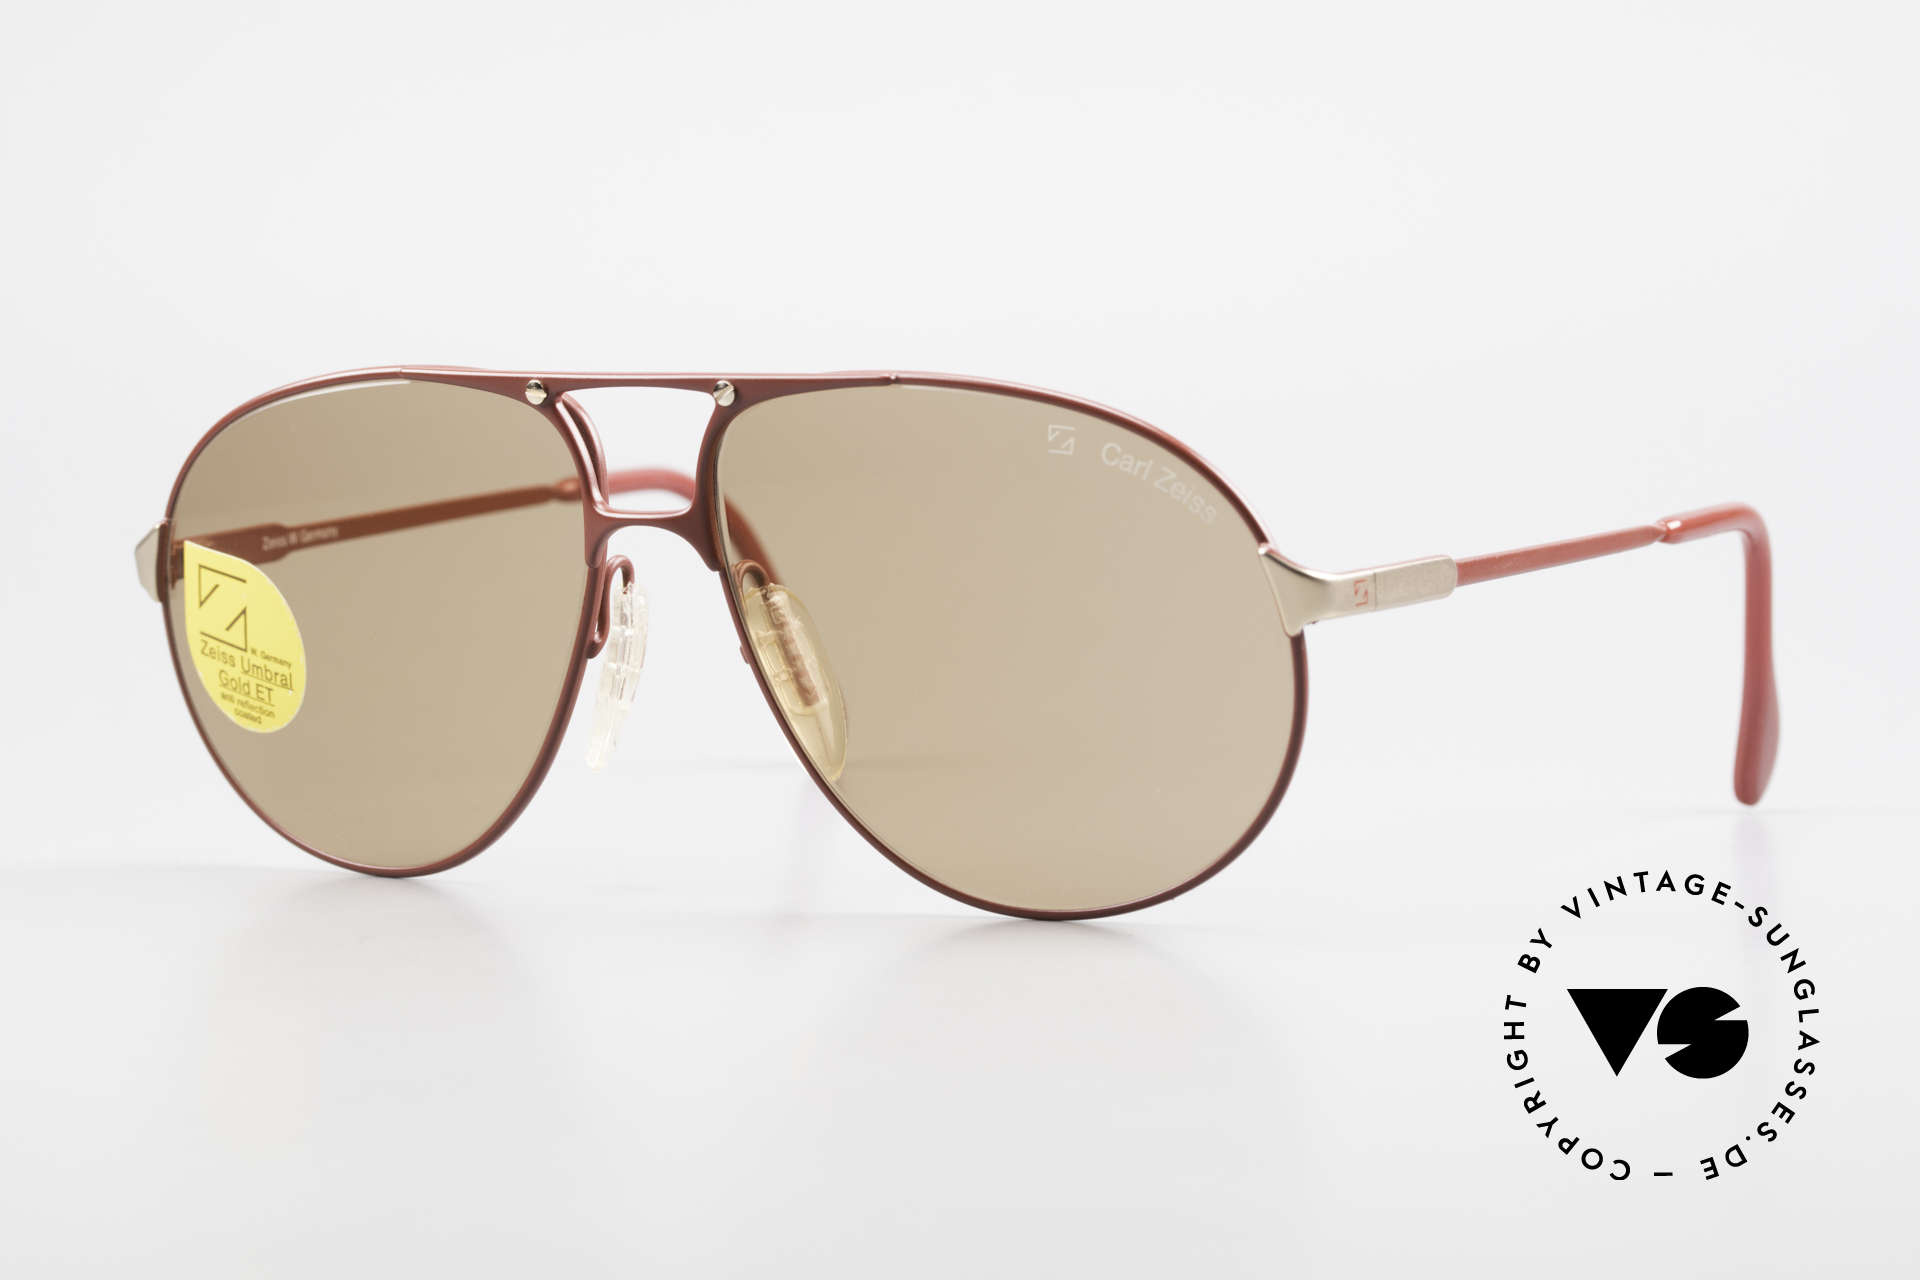 Zeiss 9289 Umbral Quality Mineral Lenses, outstanding Zeiss vintage sunglassses from the 80's, Made for Men